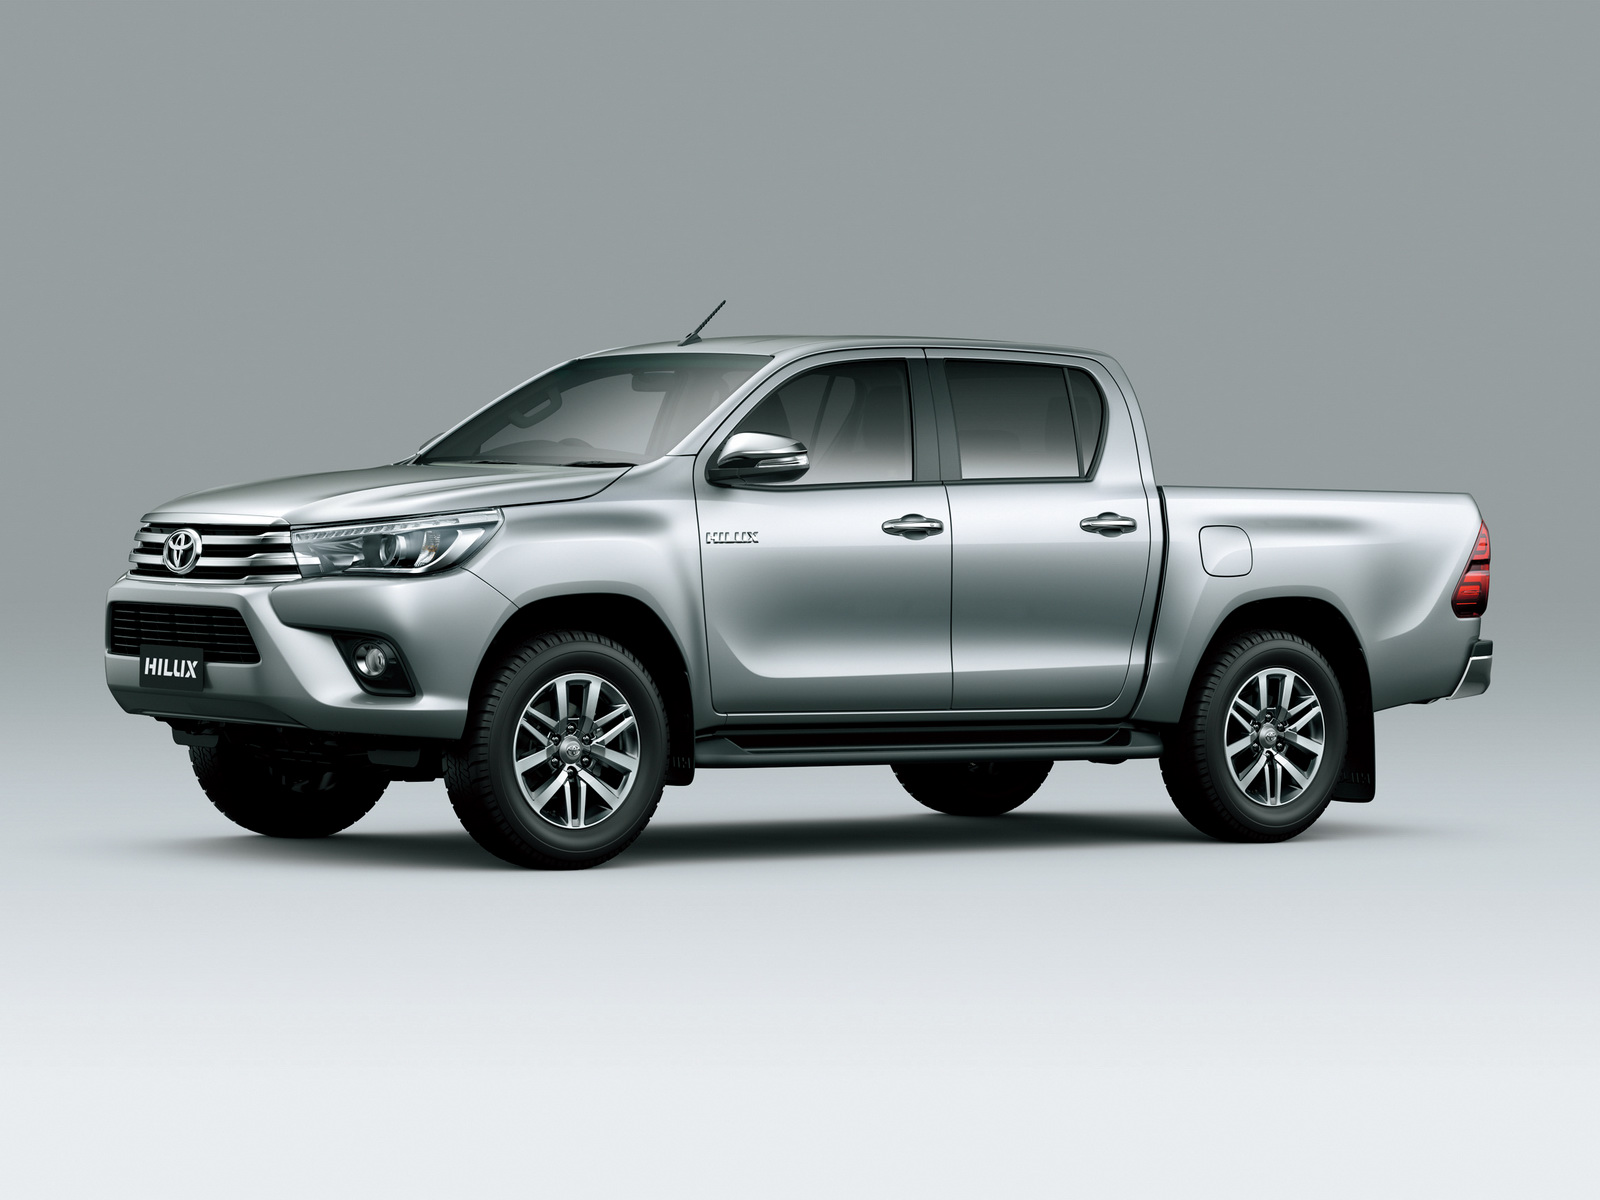 Toyota hilux photo - 7